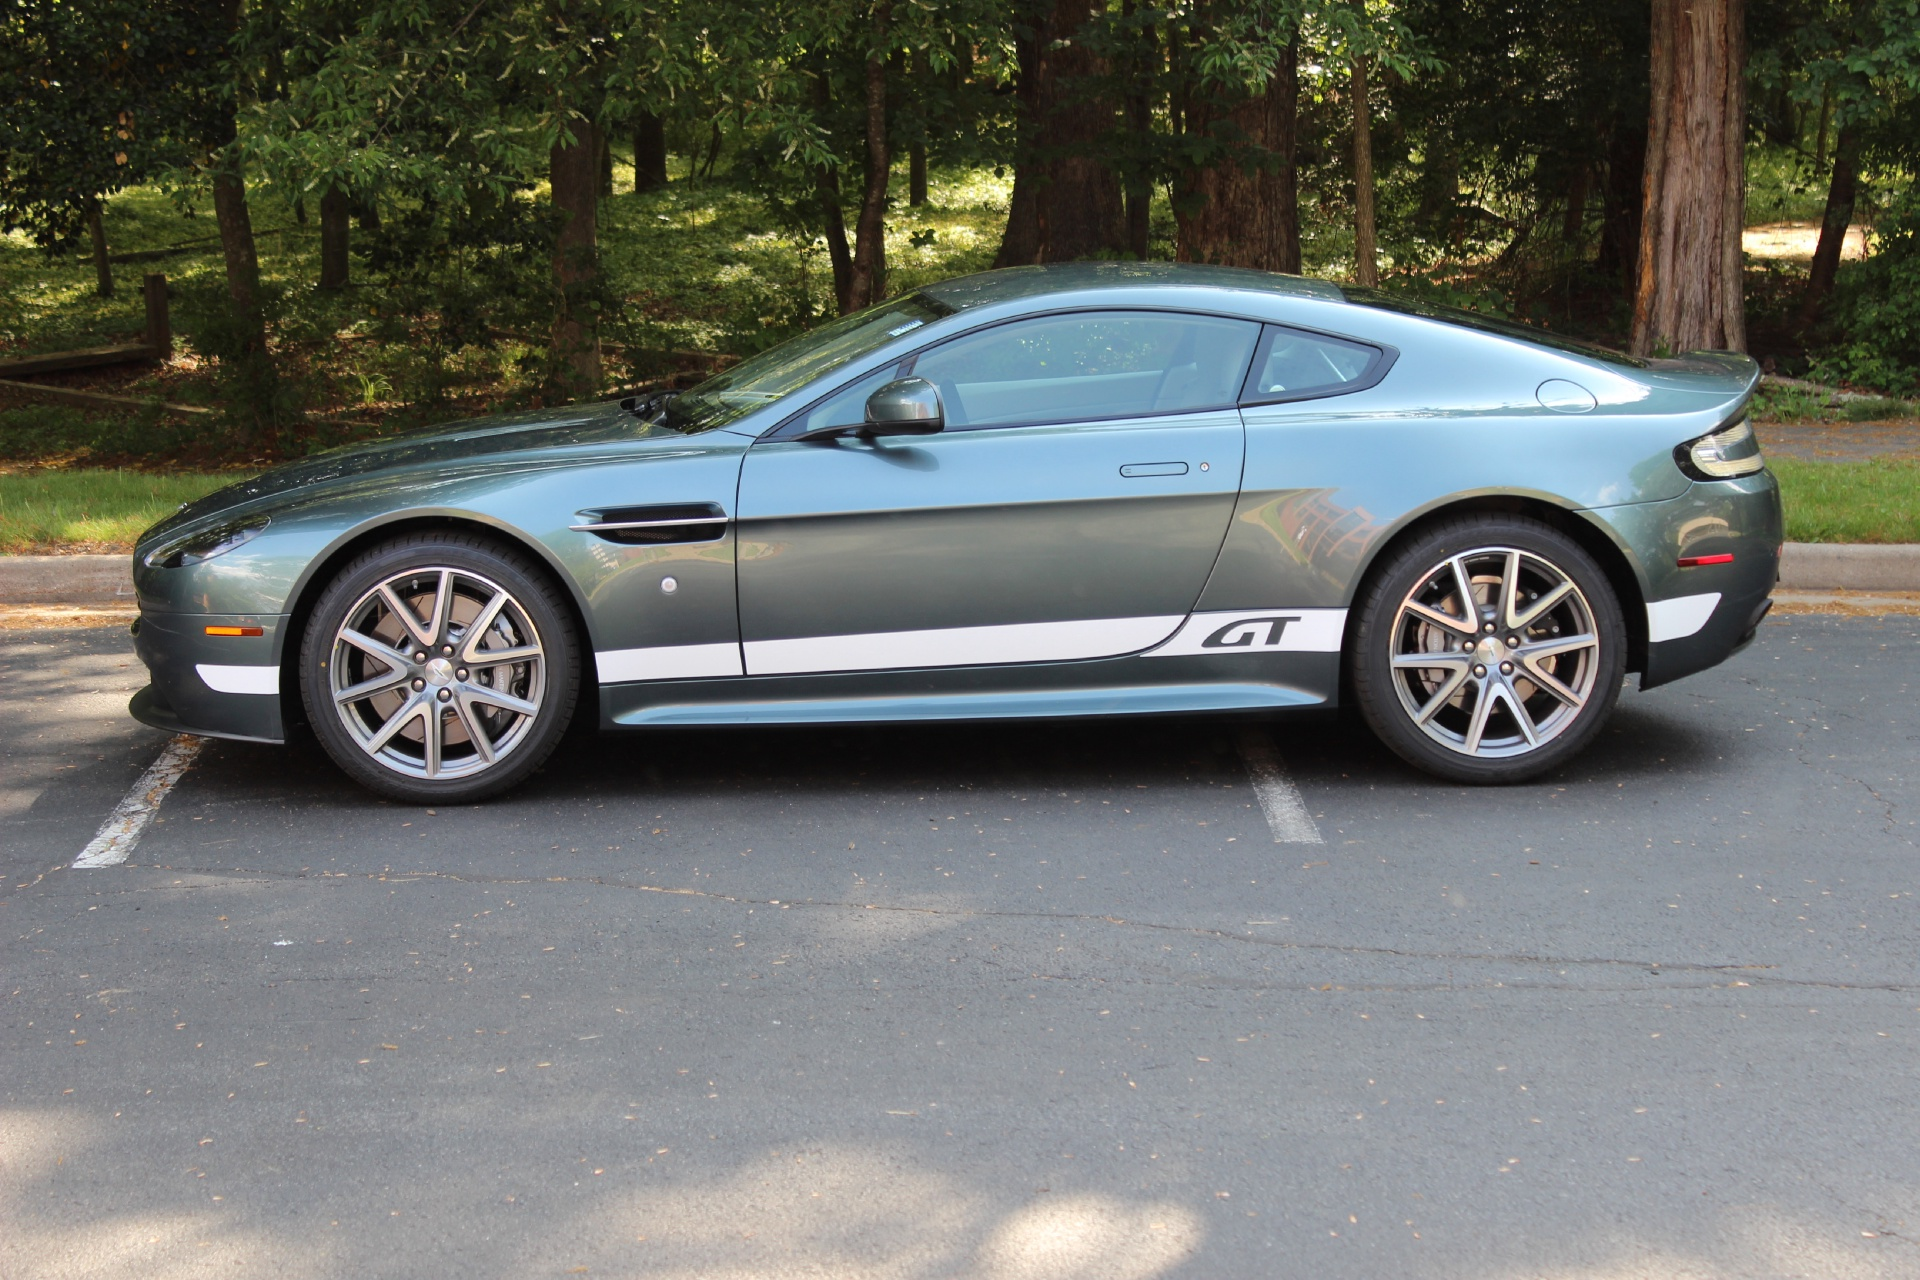 2015 Aston Martin V8 Vantage Gt Stock 5c19759 For Sale Near Vienna